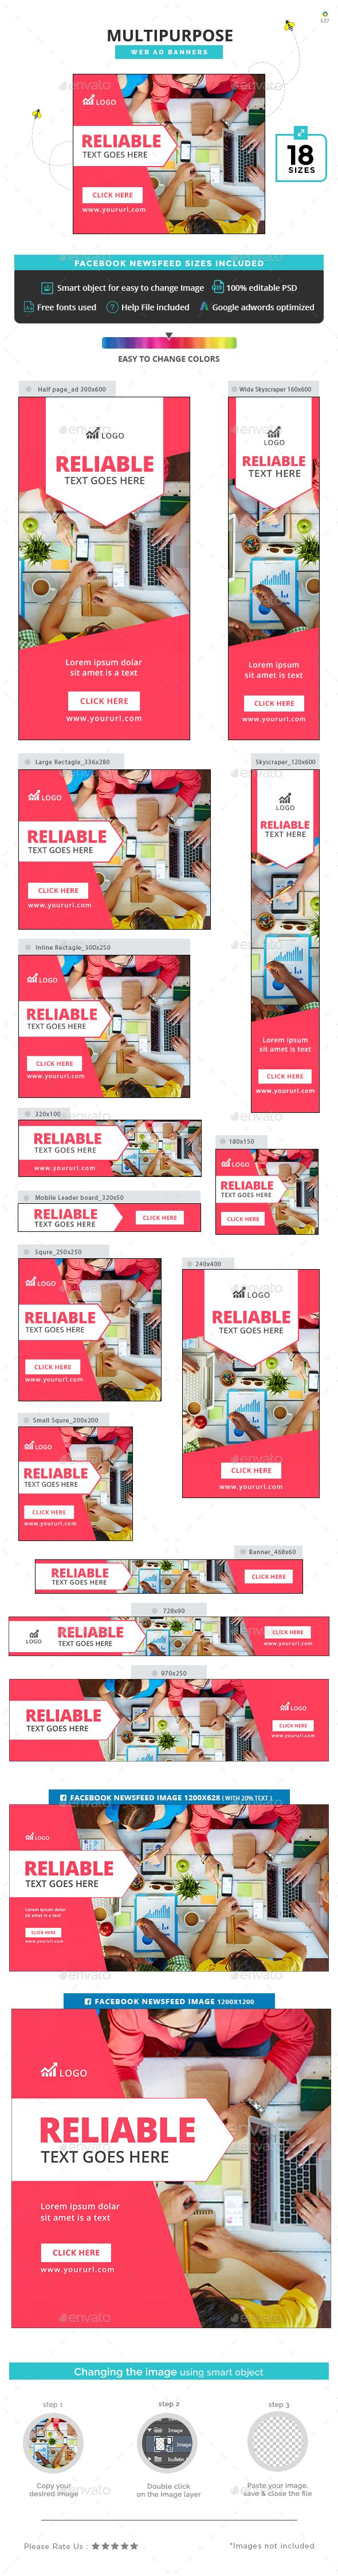 Multipurpose Banners - #Banners & Ads #Web Elements